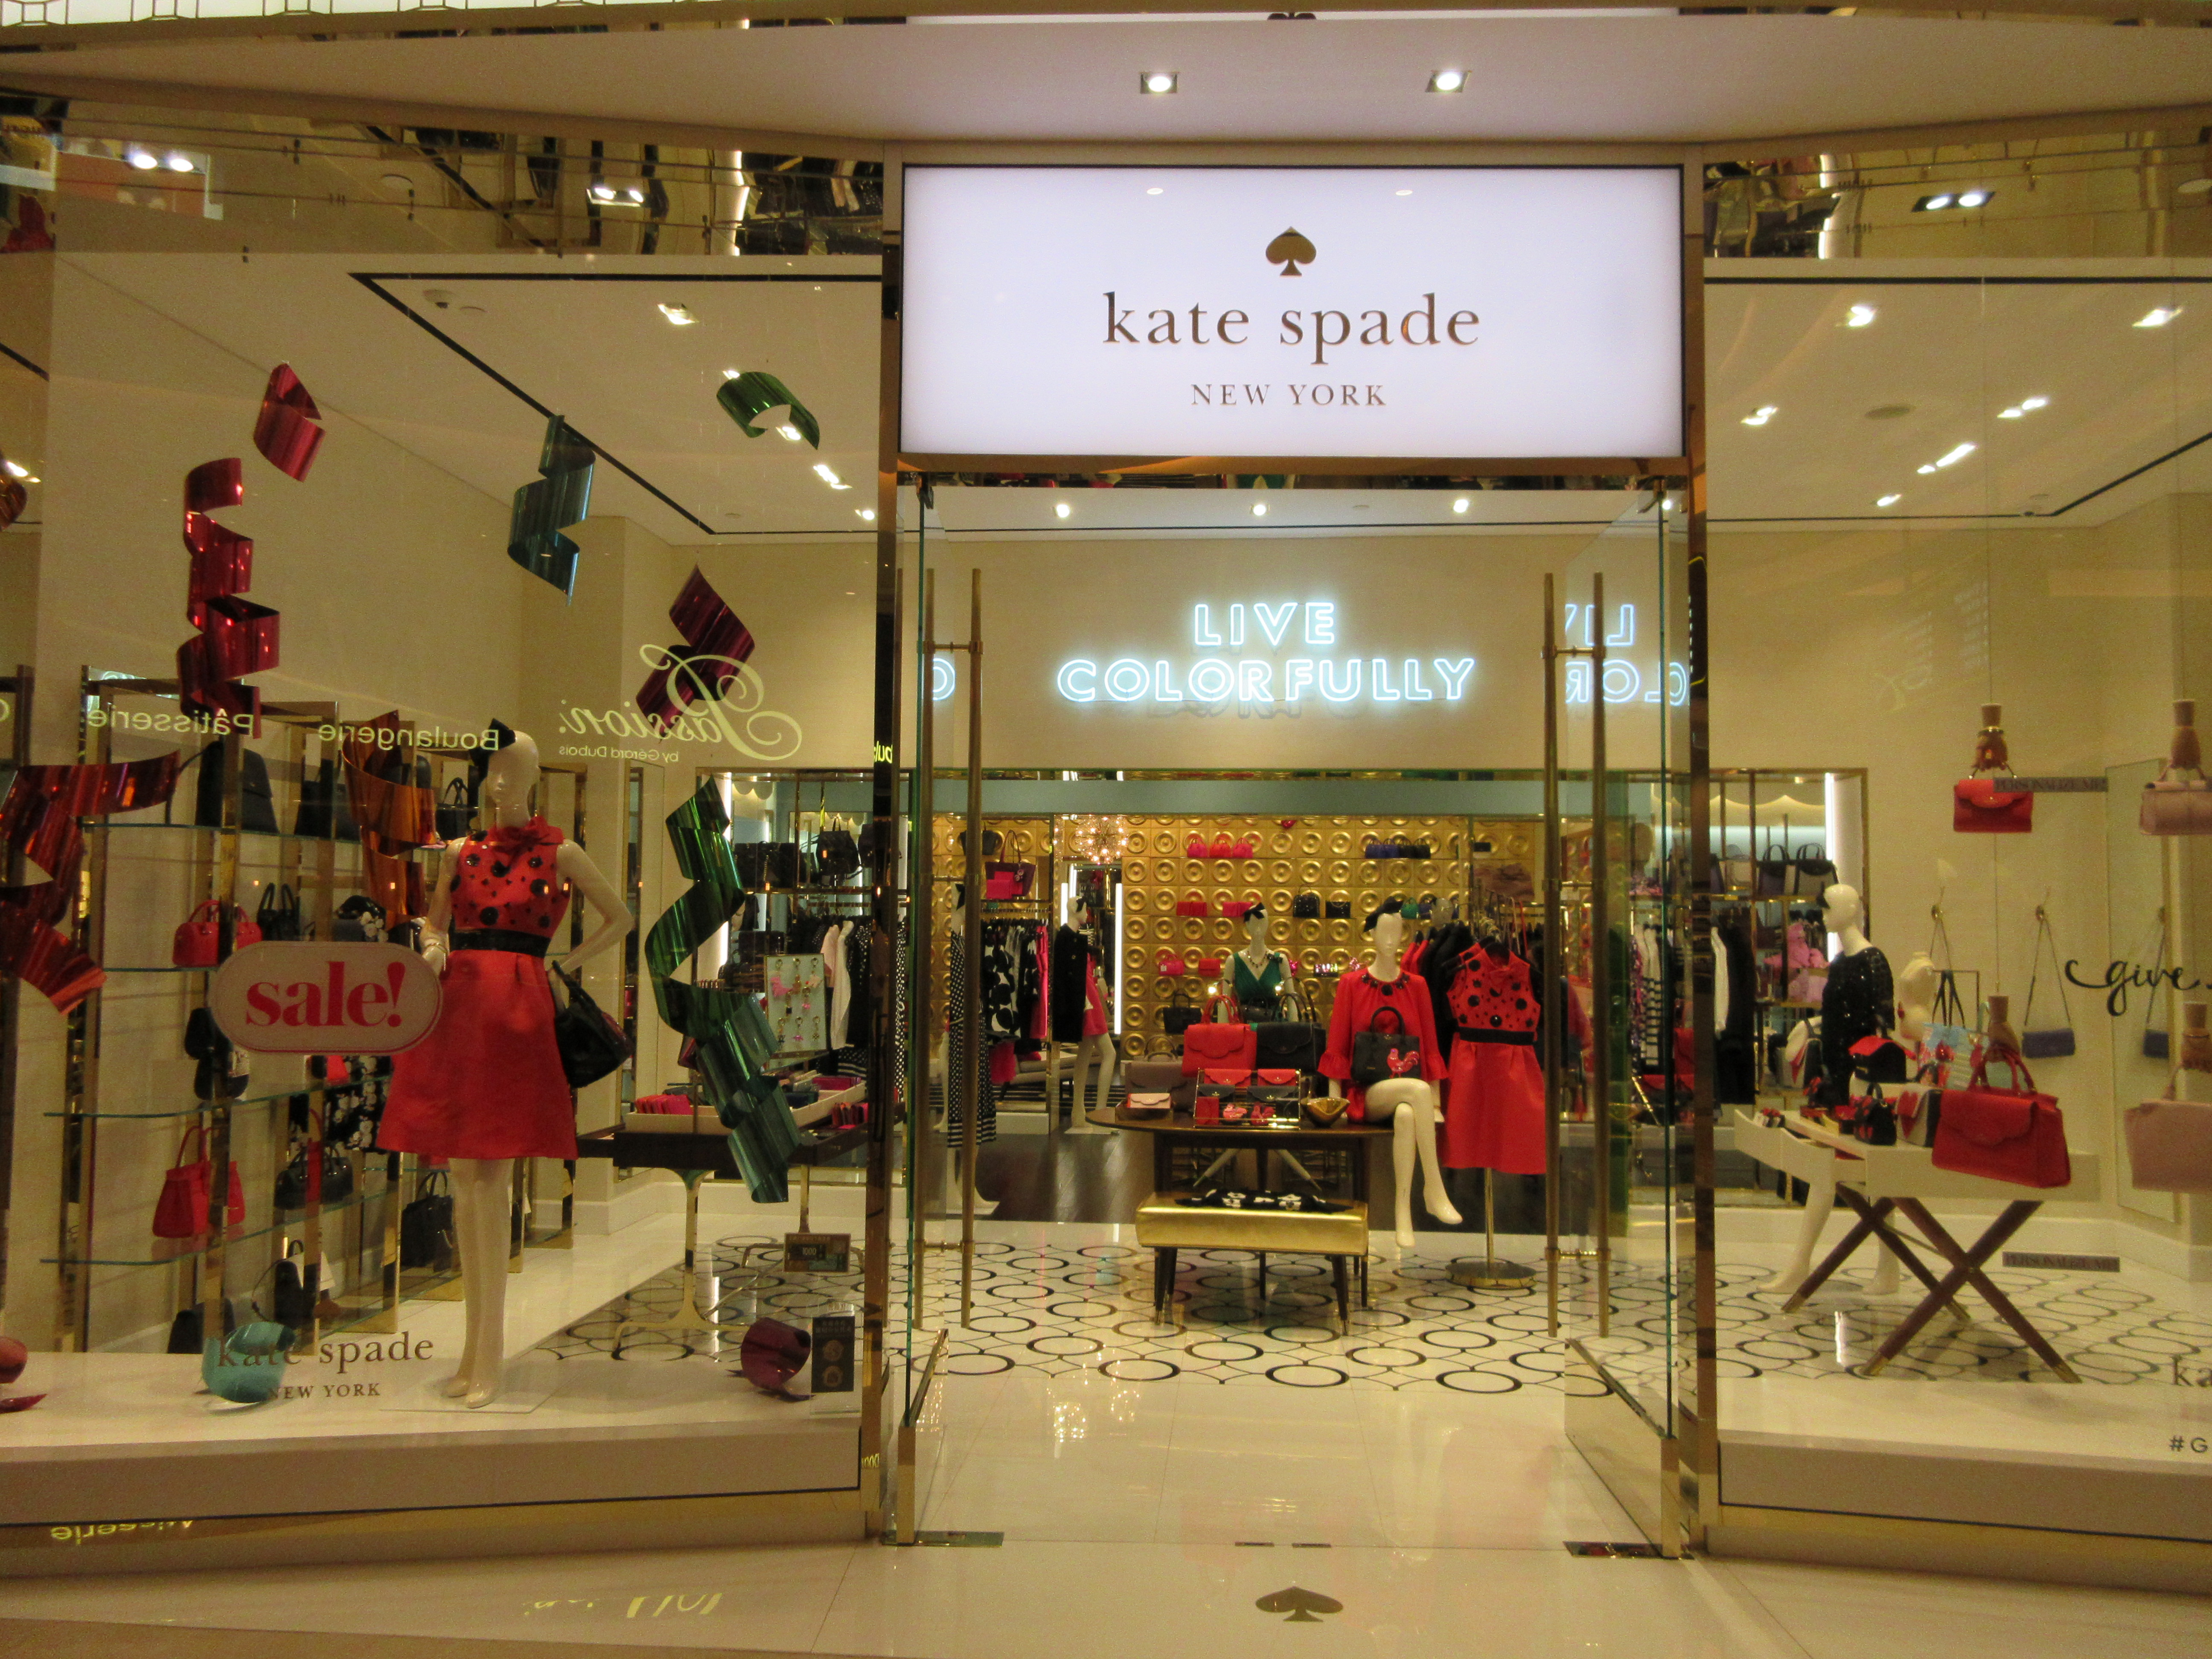 kate spade signature store in the galaxy macau mall wikimeida commons